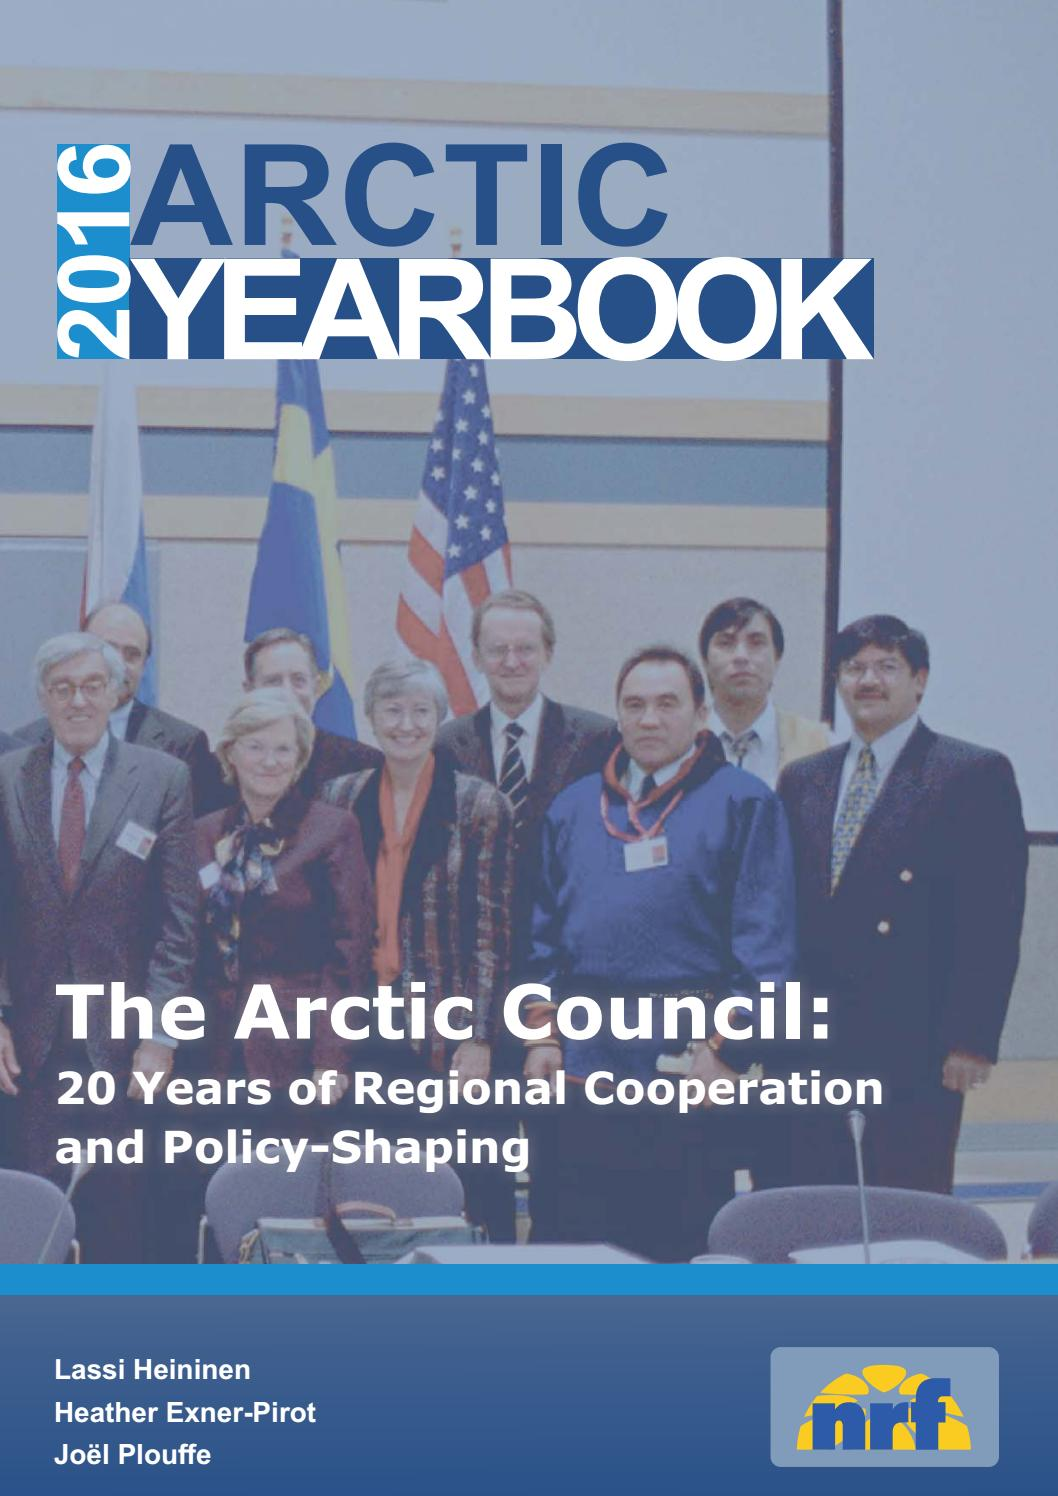 Arctic Yearbook 2016 By Portal Issuu Eybschaller Megaswitch Quote Quot Wiring Diagramm Anyone